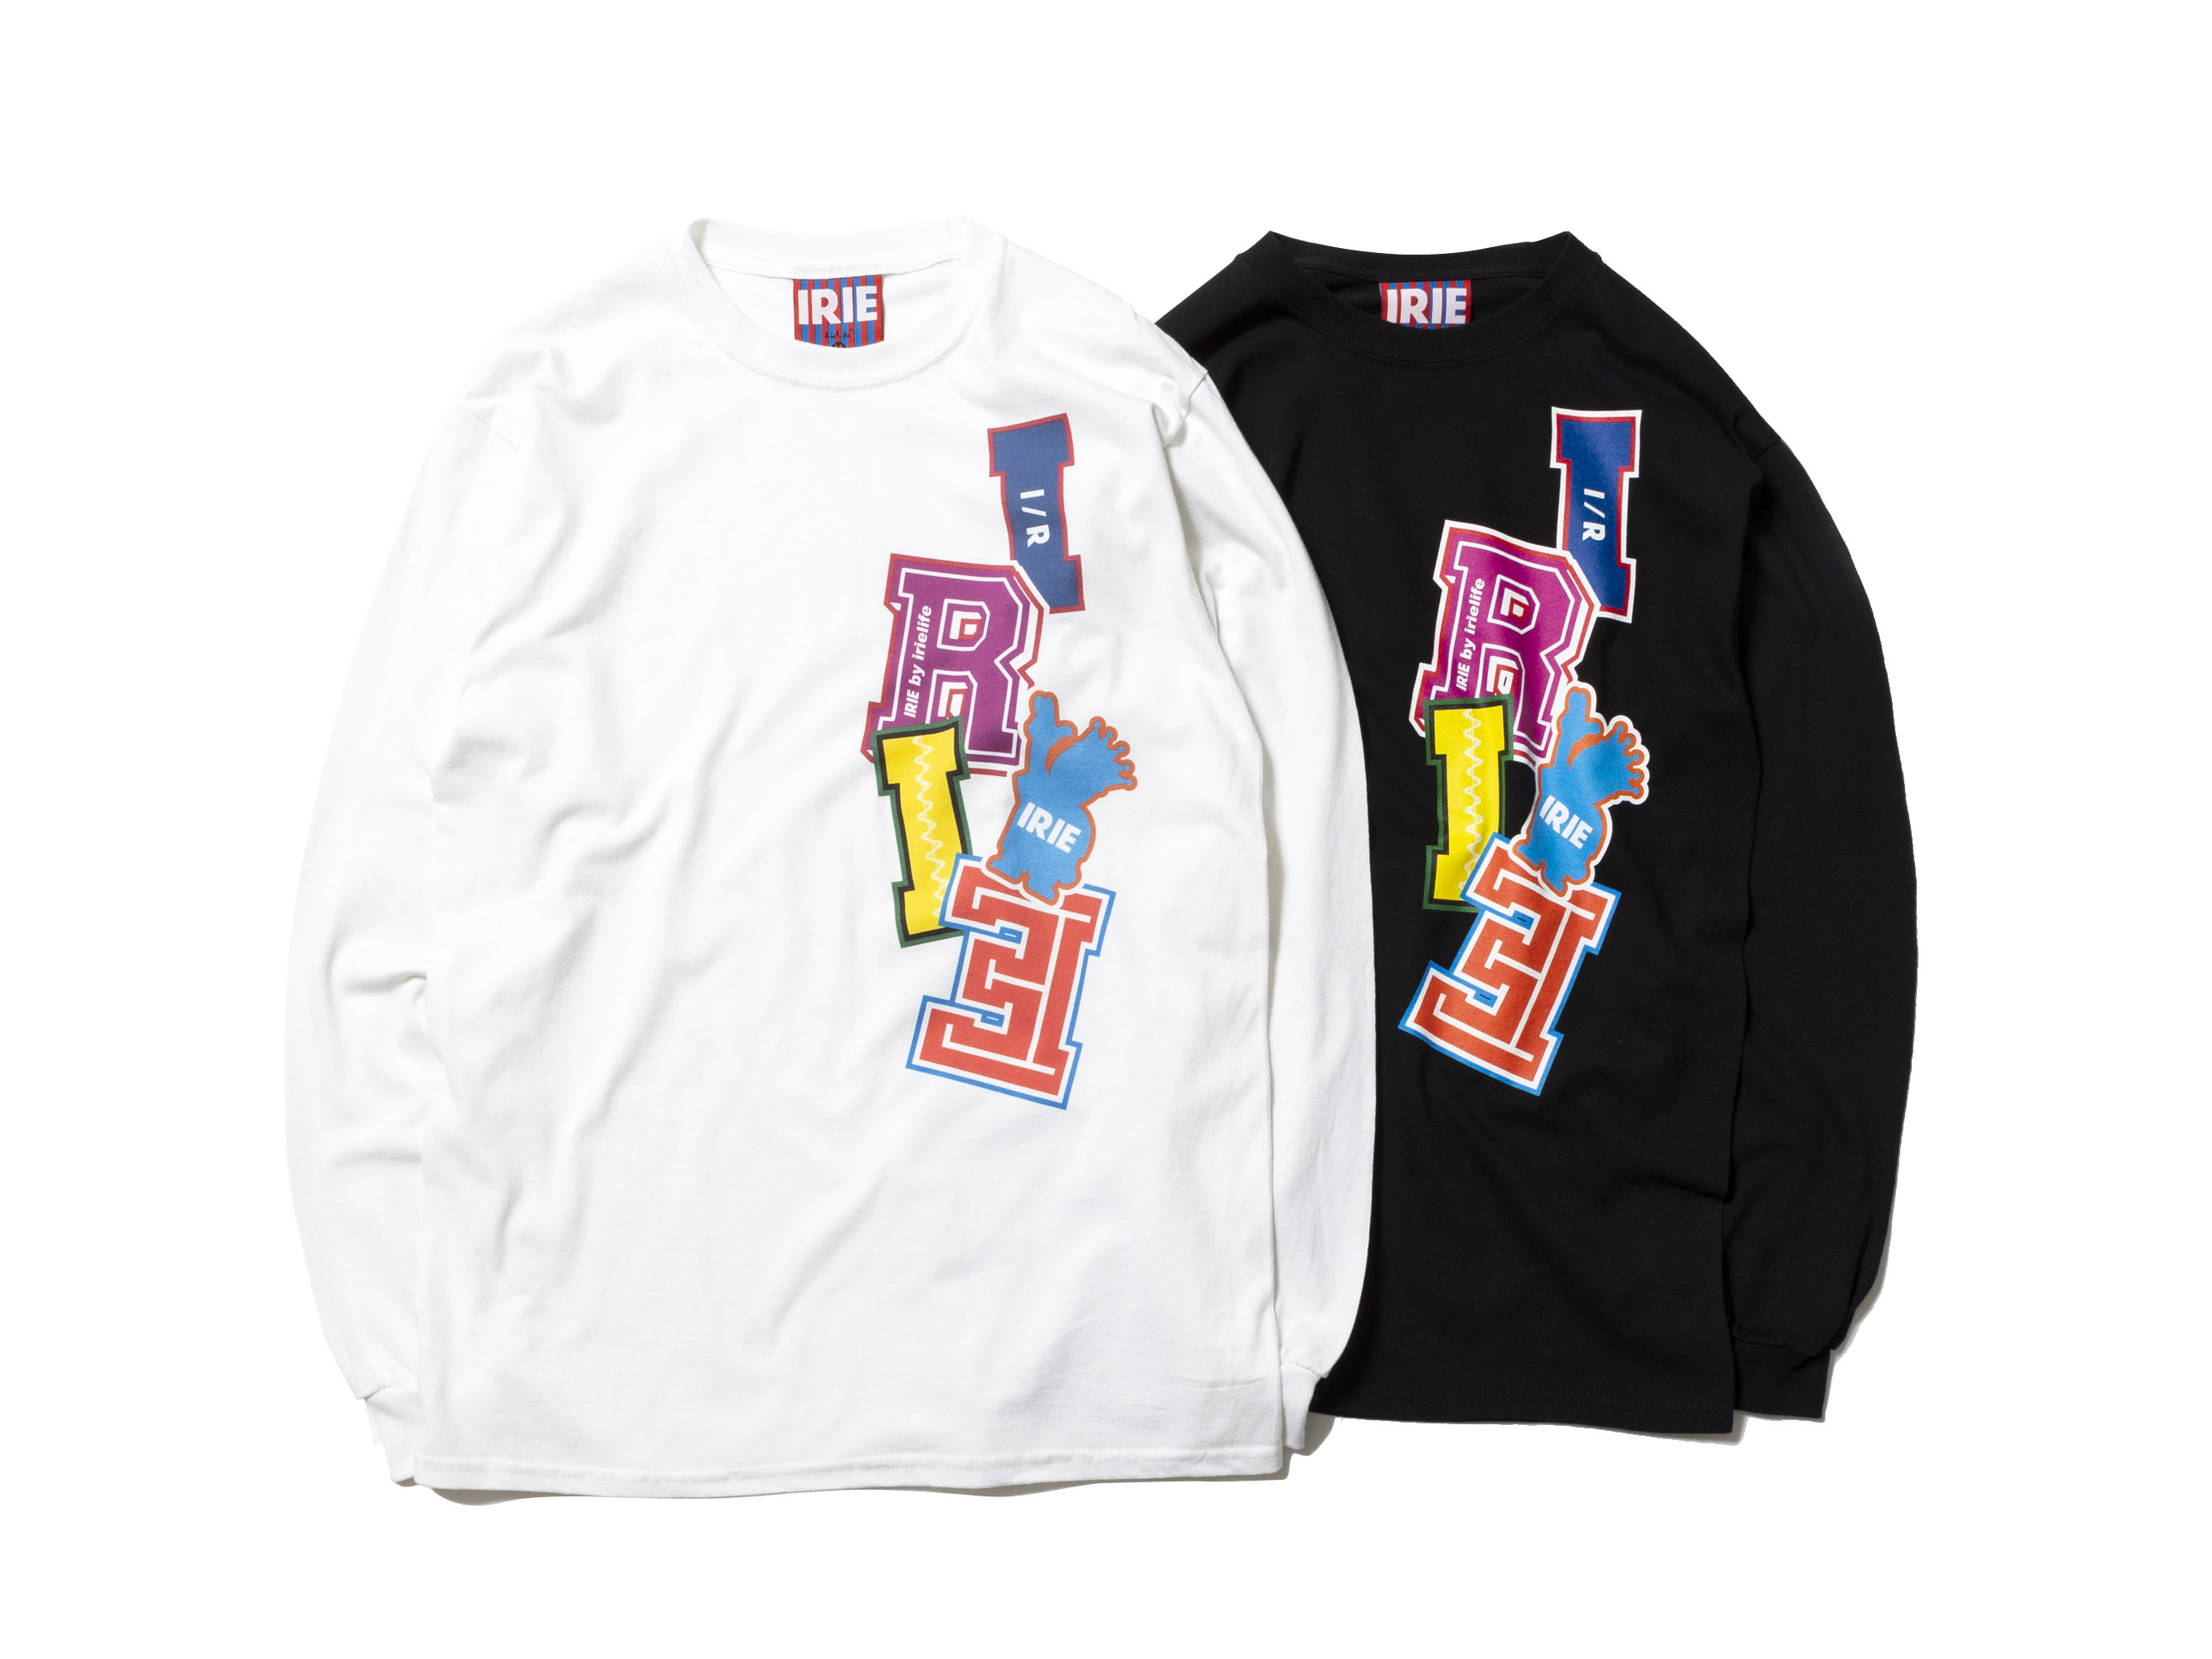 BLOCK LOGO L/S TEE -IRIE by irielife-